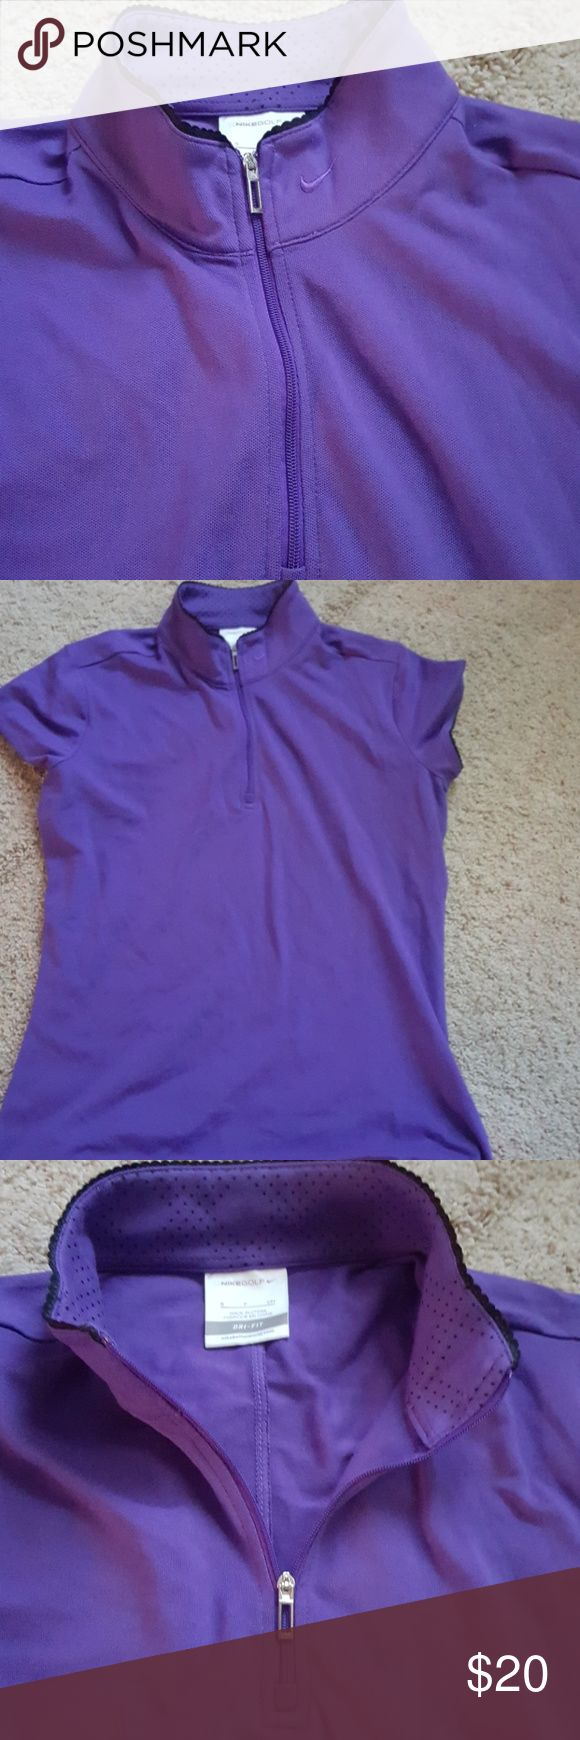 Nike Top Purple mid zip front. Can be a V neck or mock neck. Short sleeve with black piping detail. Dri fit by Nike Nike Tops